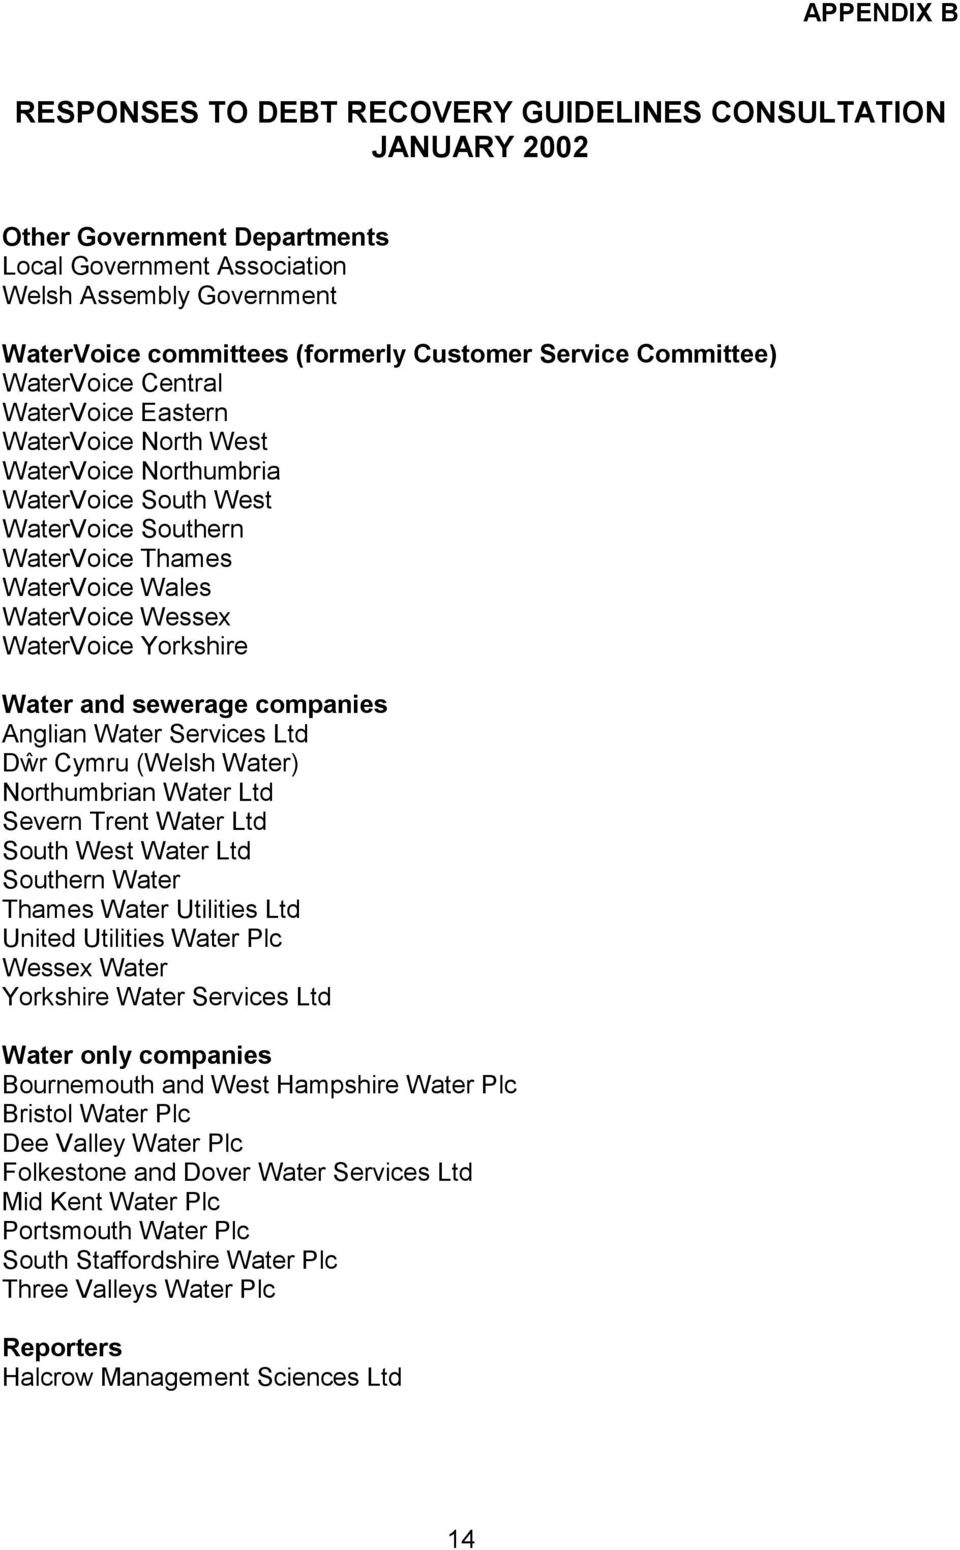 WaterVoice Yorkshire Water and sewerage companies Anglian Water Services Ltd Dŵr Cymru (Welsh Water) Northumbrian Water Ltd Severn Trent Water Ltd South West Water Ltd Southern Water Thames Water